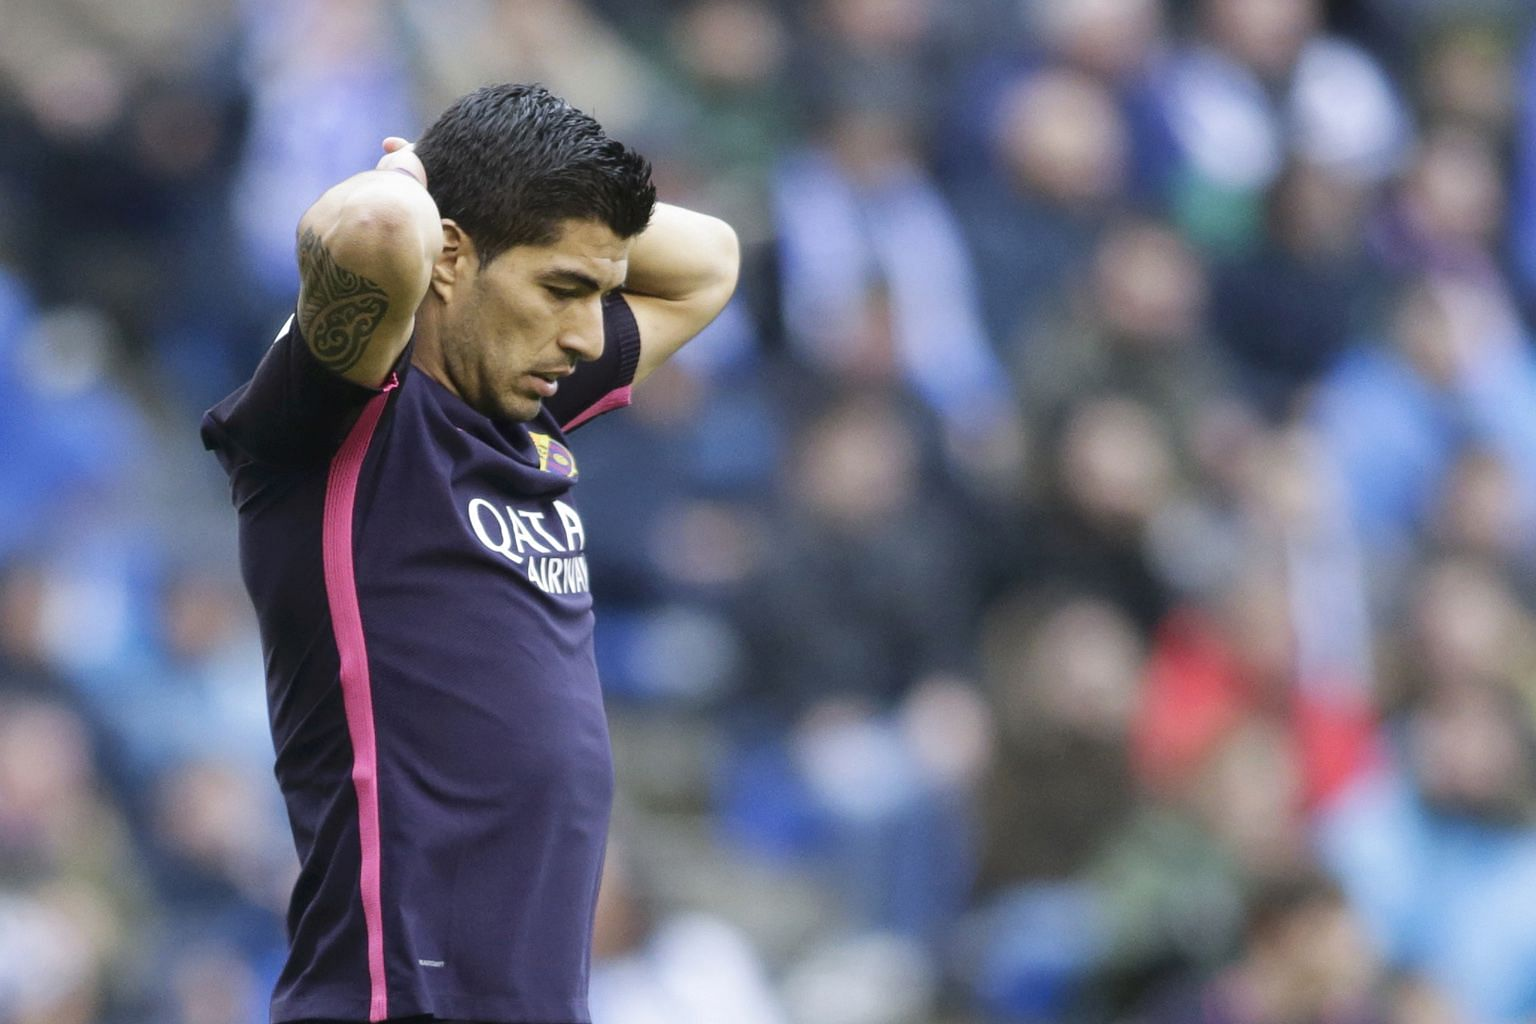 """A frustrated Luis Suarez, who scored Barcelona's equaliser at Deportivo. Poor defending from corners cost them in the 1-2 loss, as they conceded top spot in La Liga to Real and Barca manager Luis Enrique knows they need a """"very strong"""" finish to secu"""